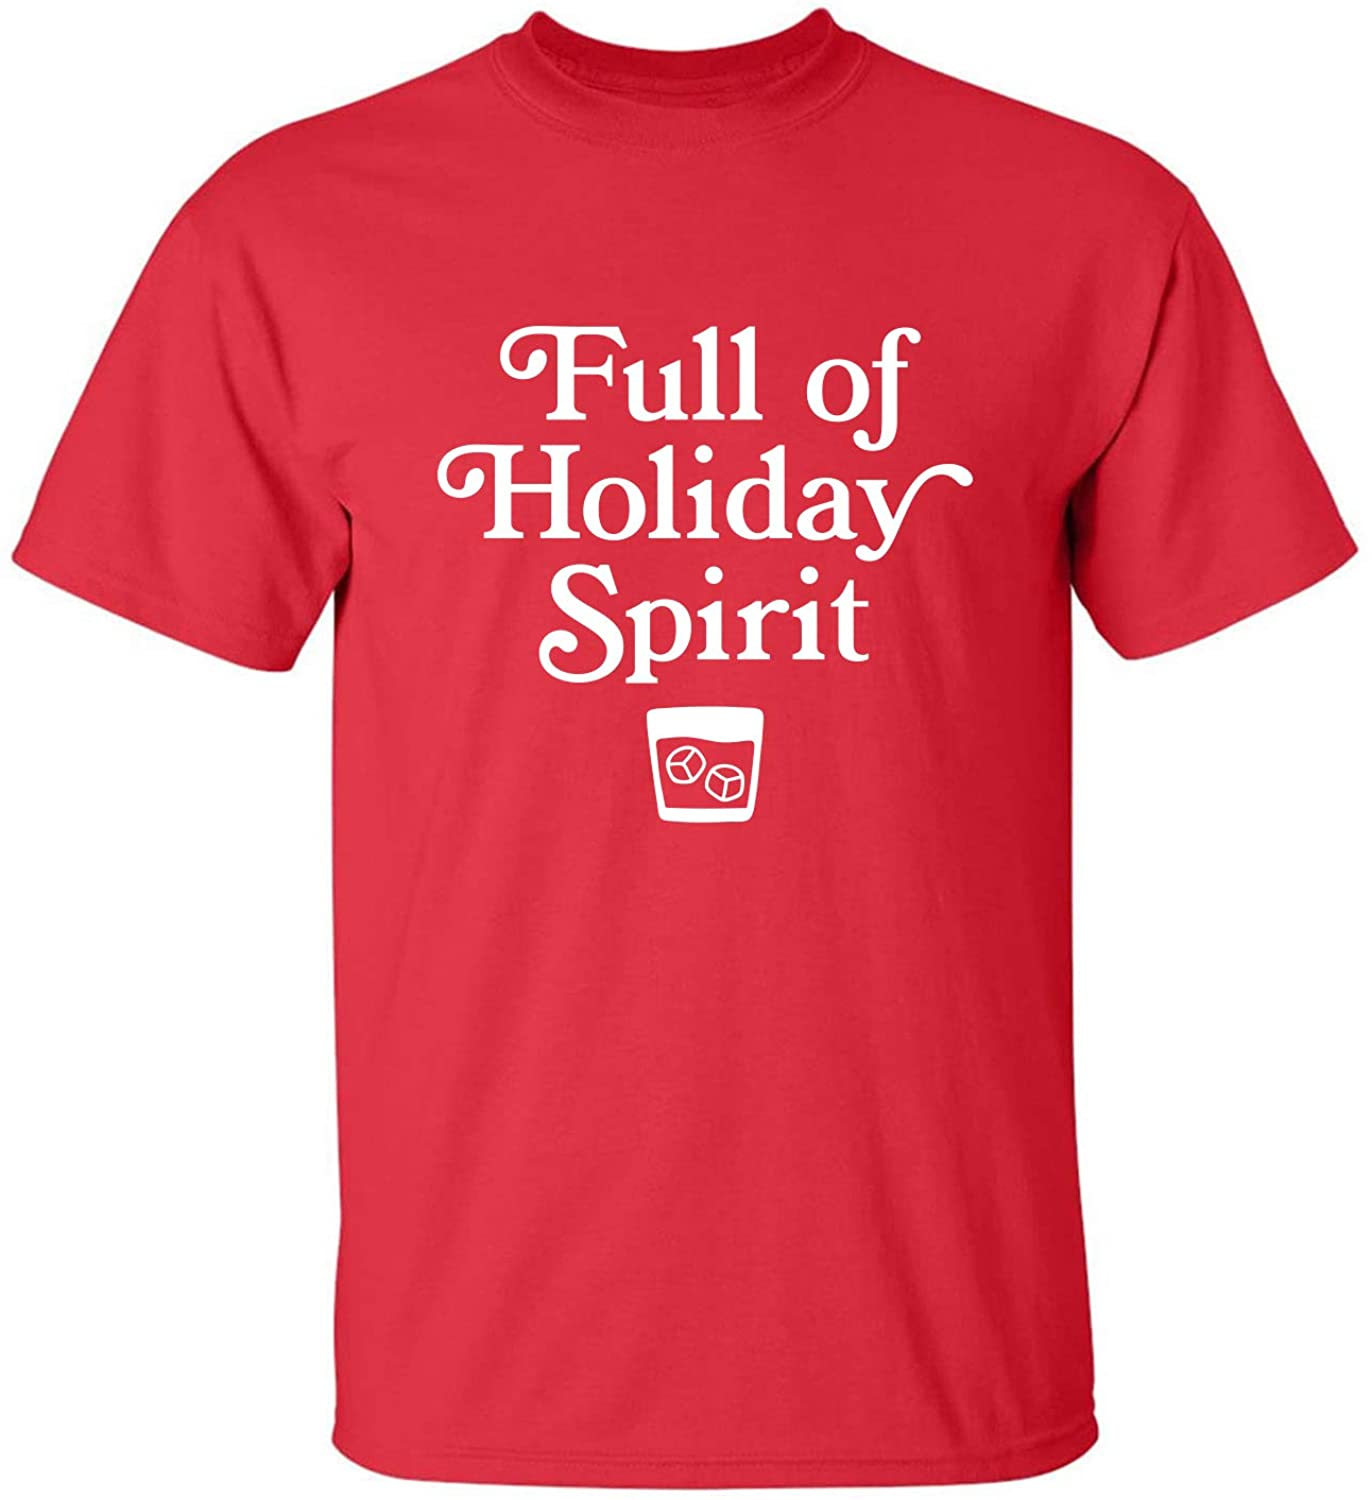 Full of Holiday Spirit Adult T-Shirt in Red - XXXX-Large